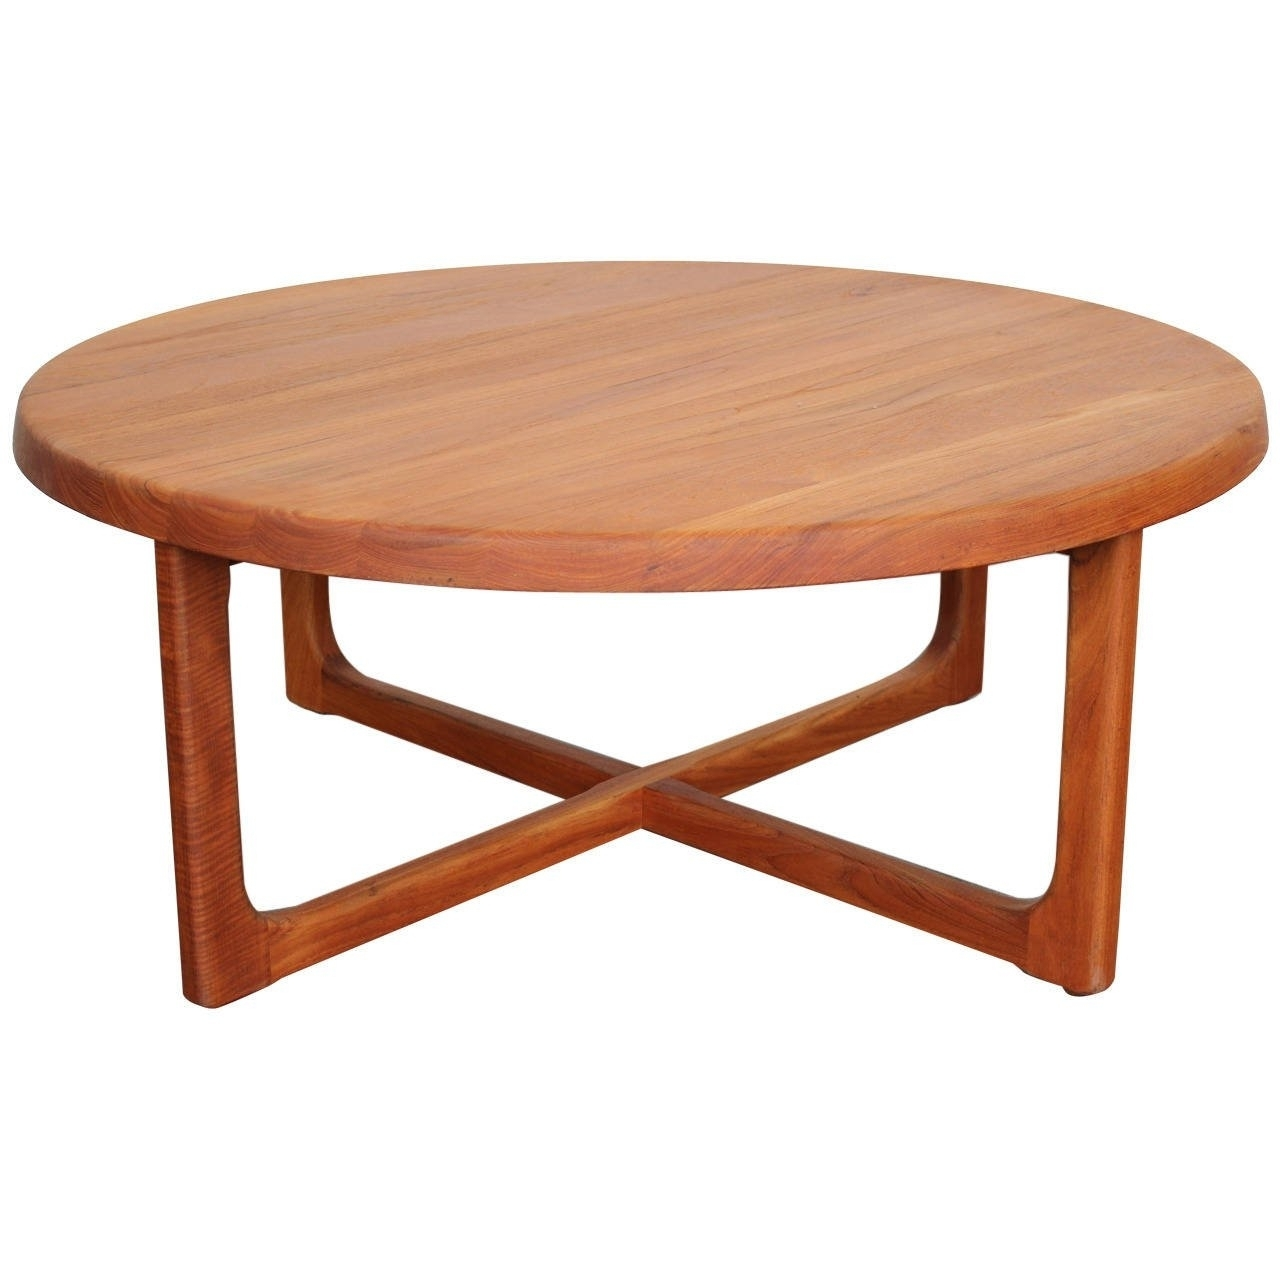 Amazing Of Round Teak Coffee Table With Mid Century Large Round within Large Teak Coffee Tables (Image 2 of 30)